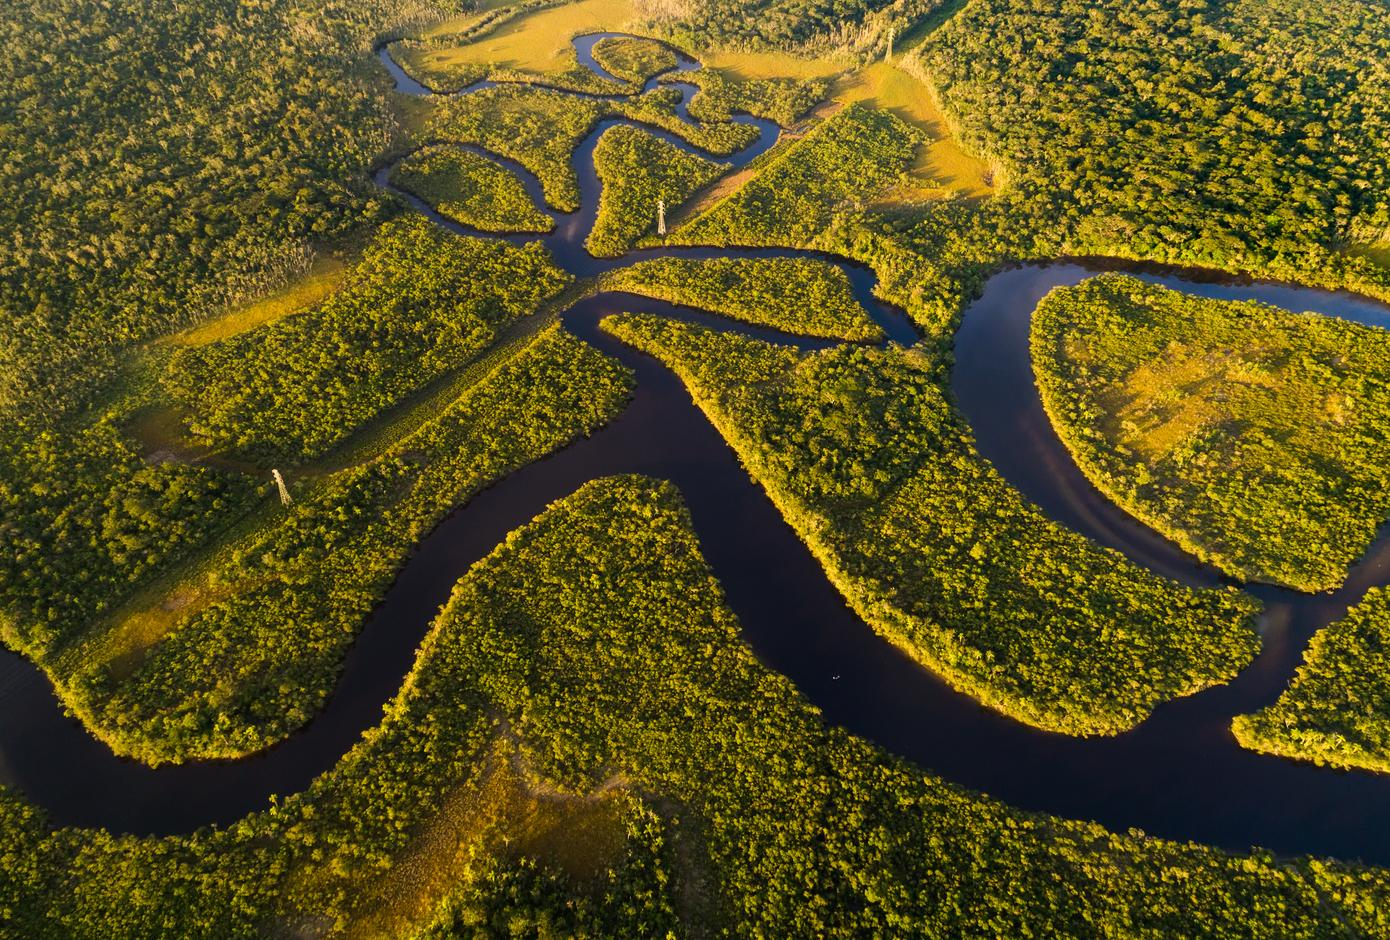 Aerial view of the Amazon Rainforest, in Brazil.